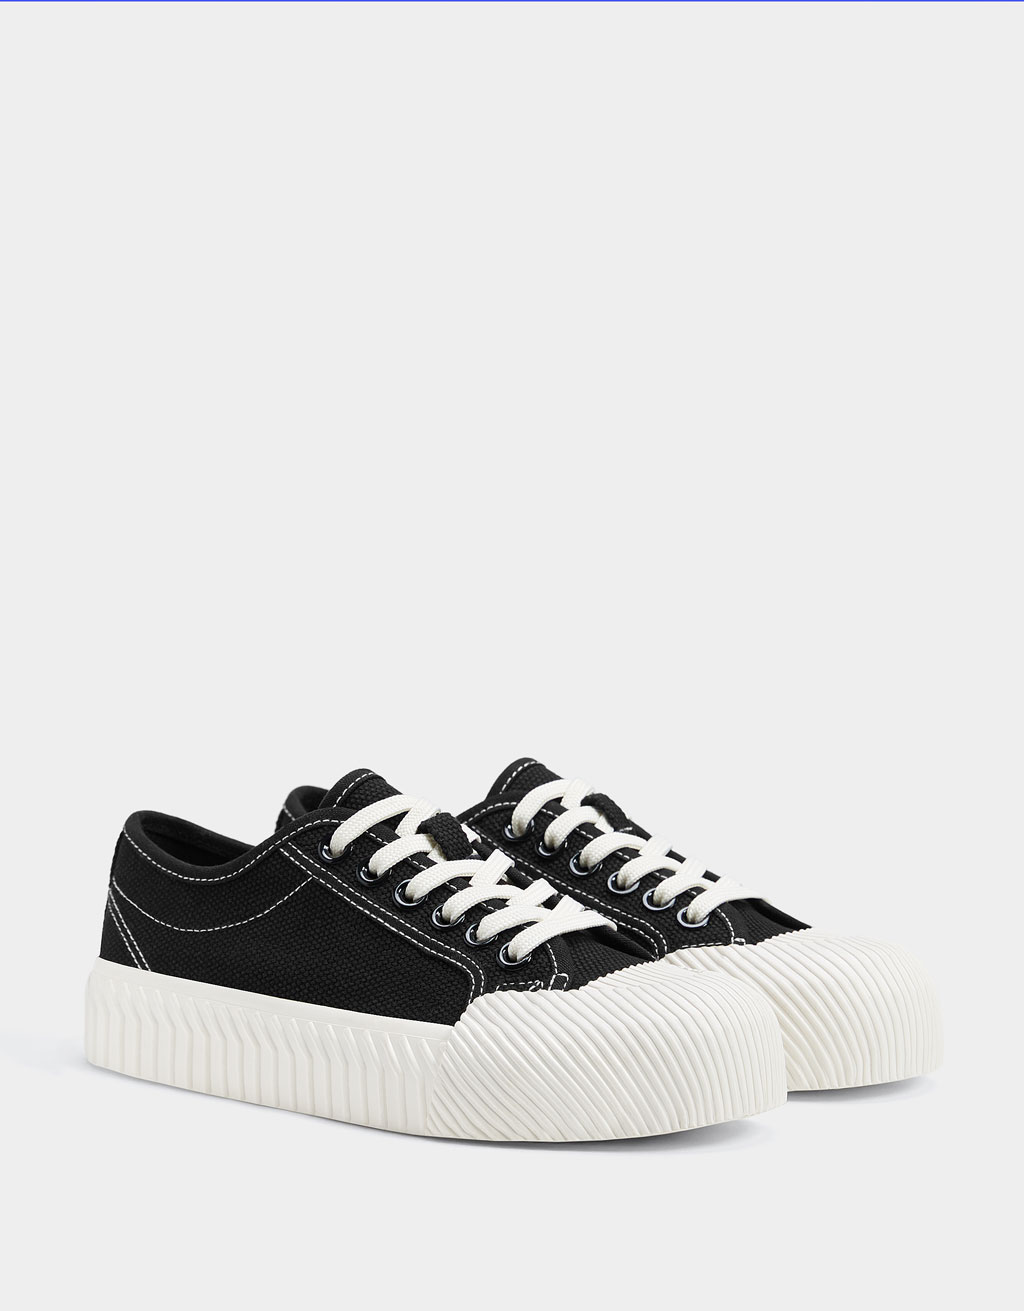 Topstitched platform sneakers